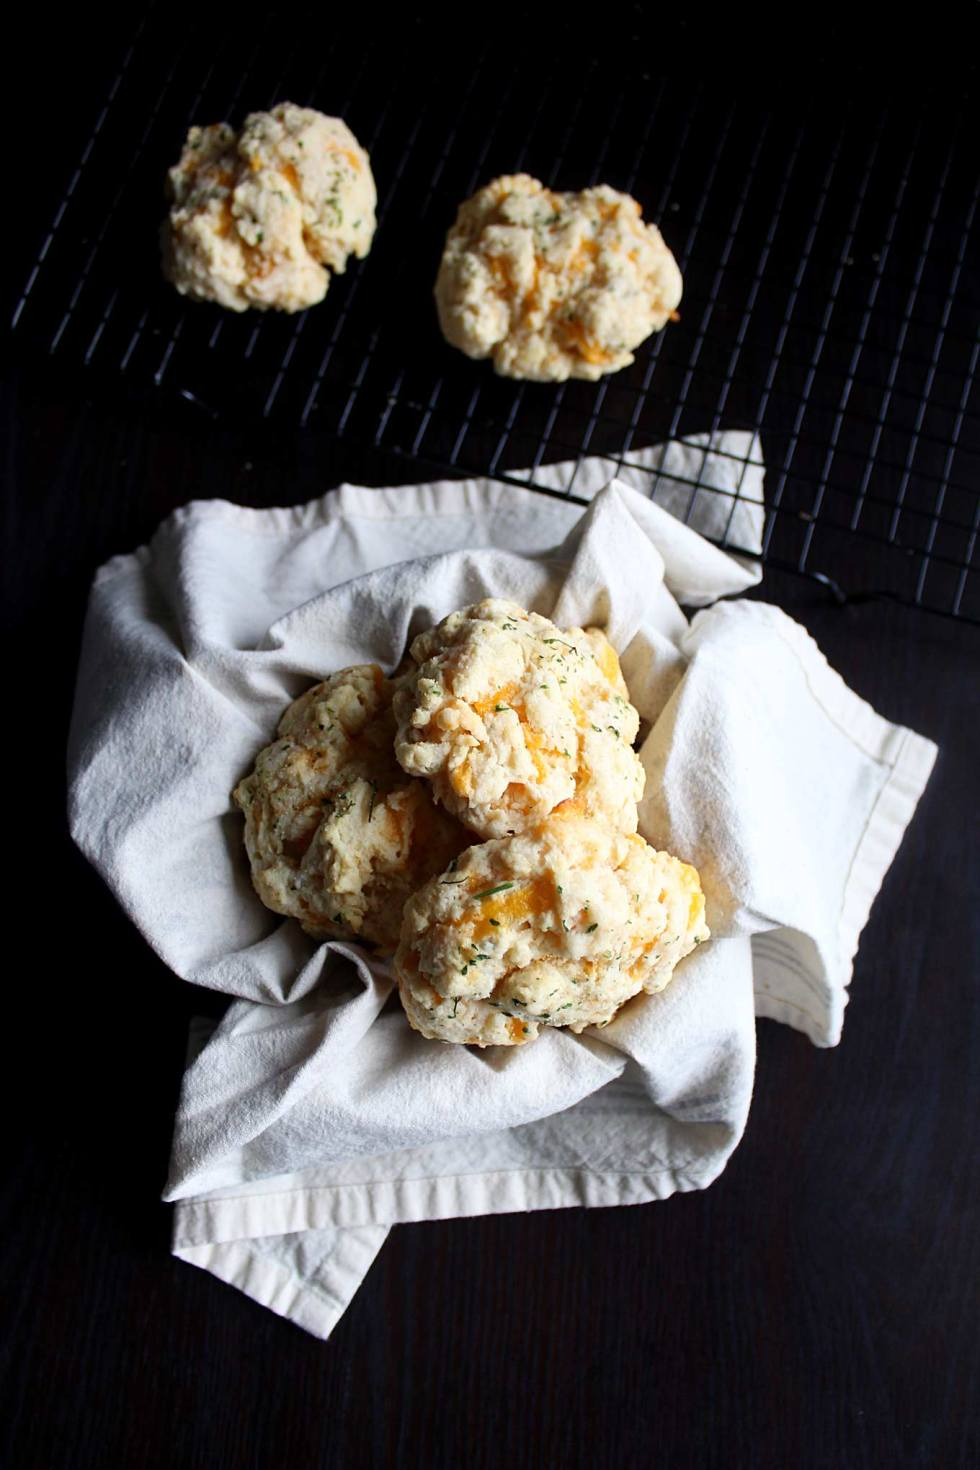 Copycat Red Lobster Cheddar Bay Biscuits Recipe | Super Easy | Bisquick | Cheddar Garlic Biscuits | Snacks | Dinner Rolls | From Scratch